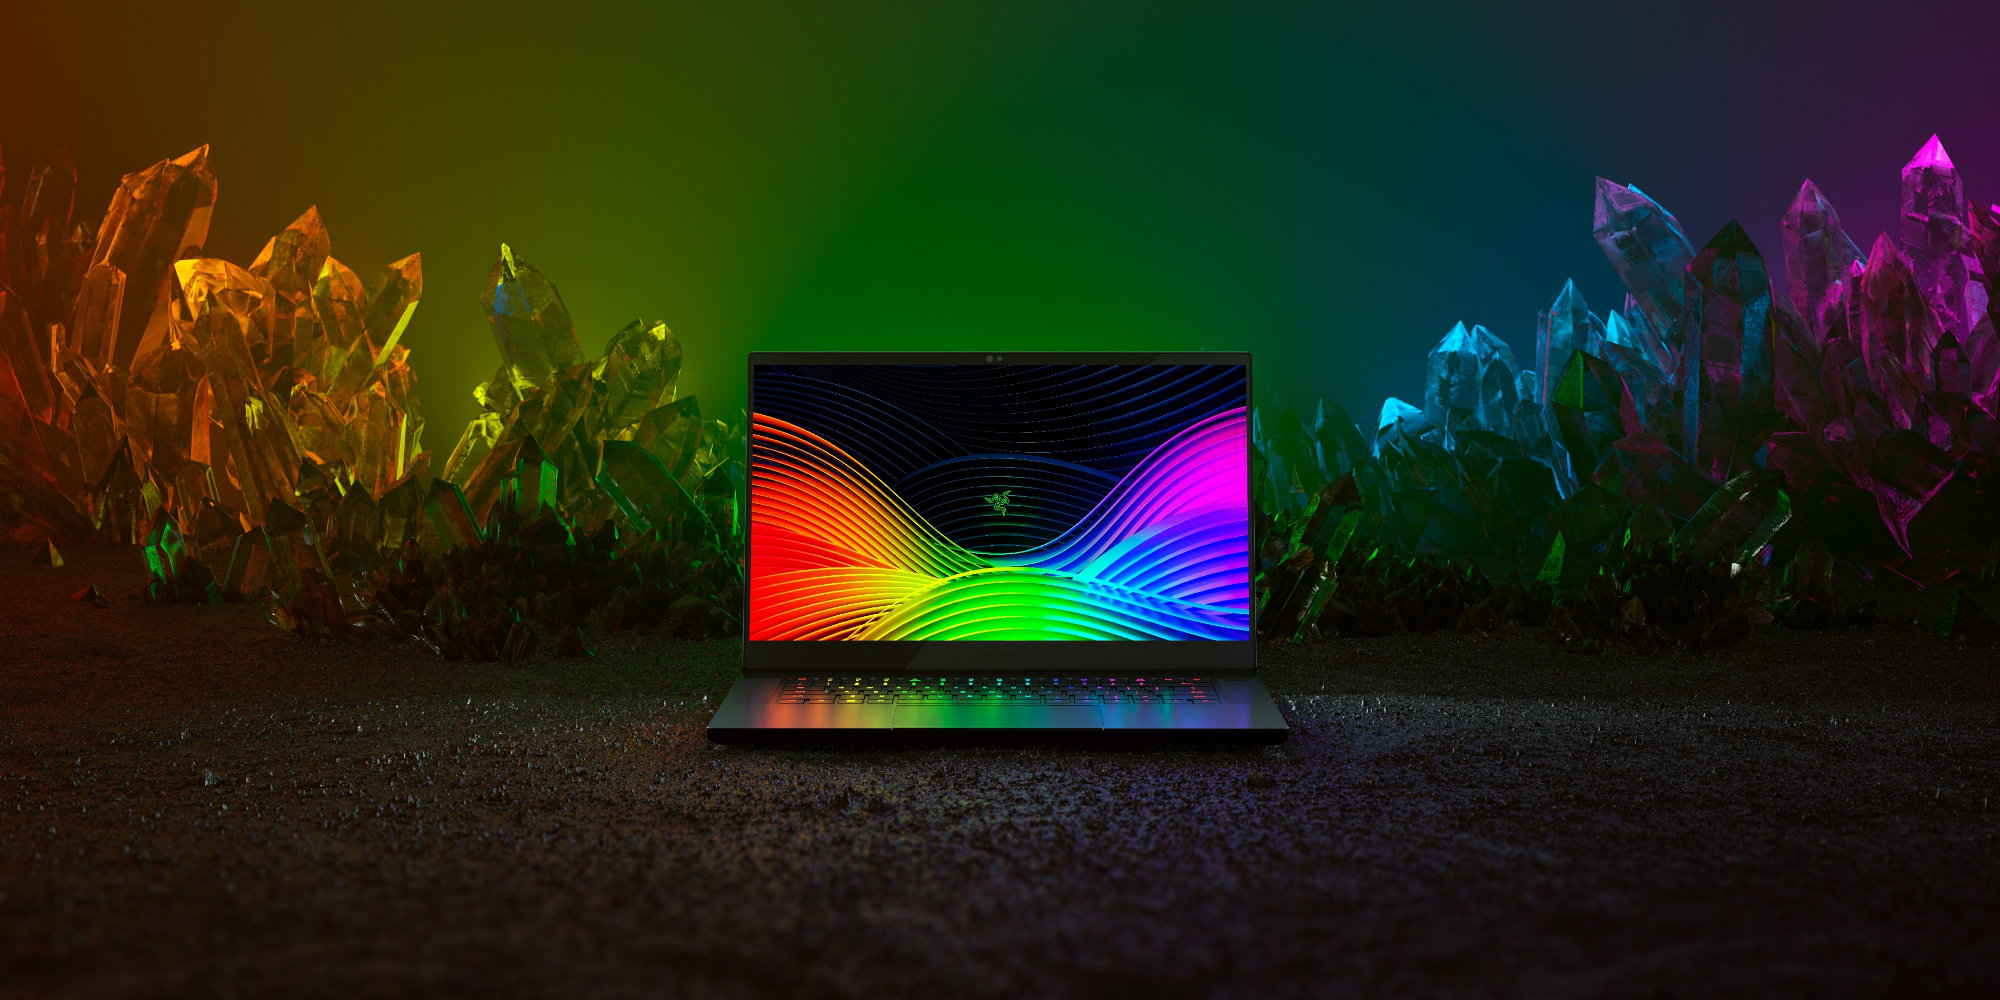 Razer unleashes gaming laptops w/ Intel's latest chips, 240Hz displays, 4K, and more